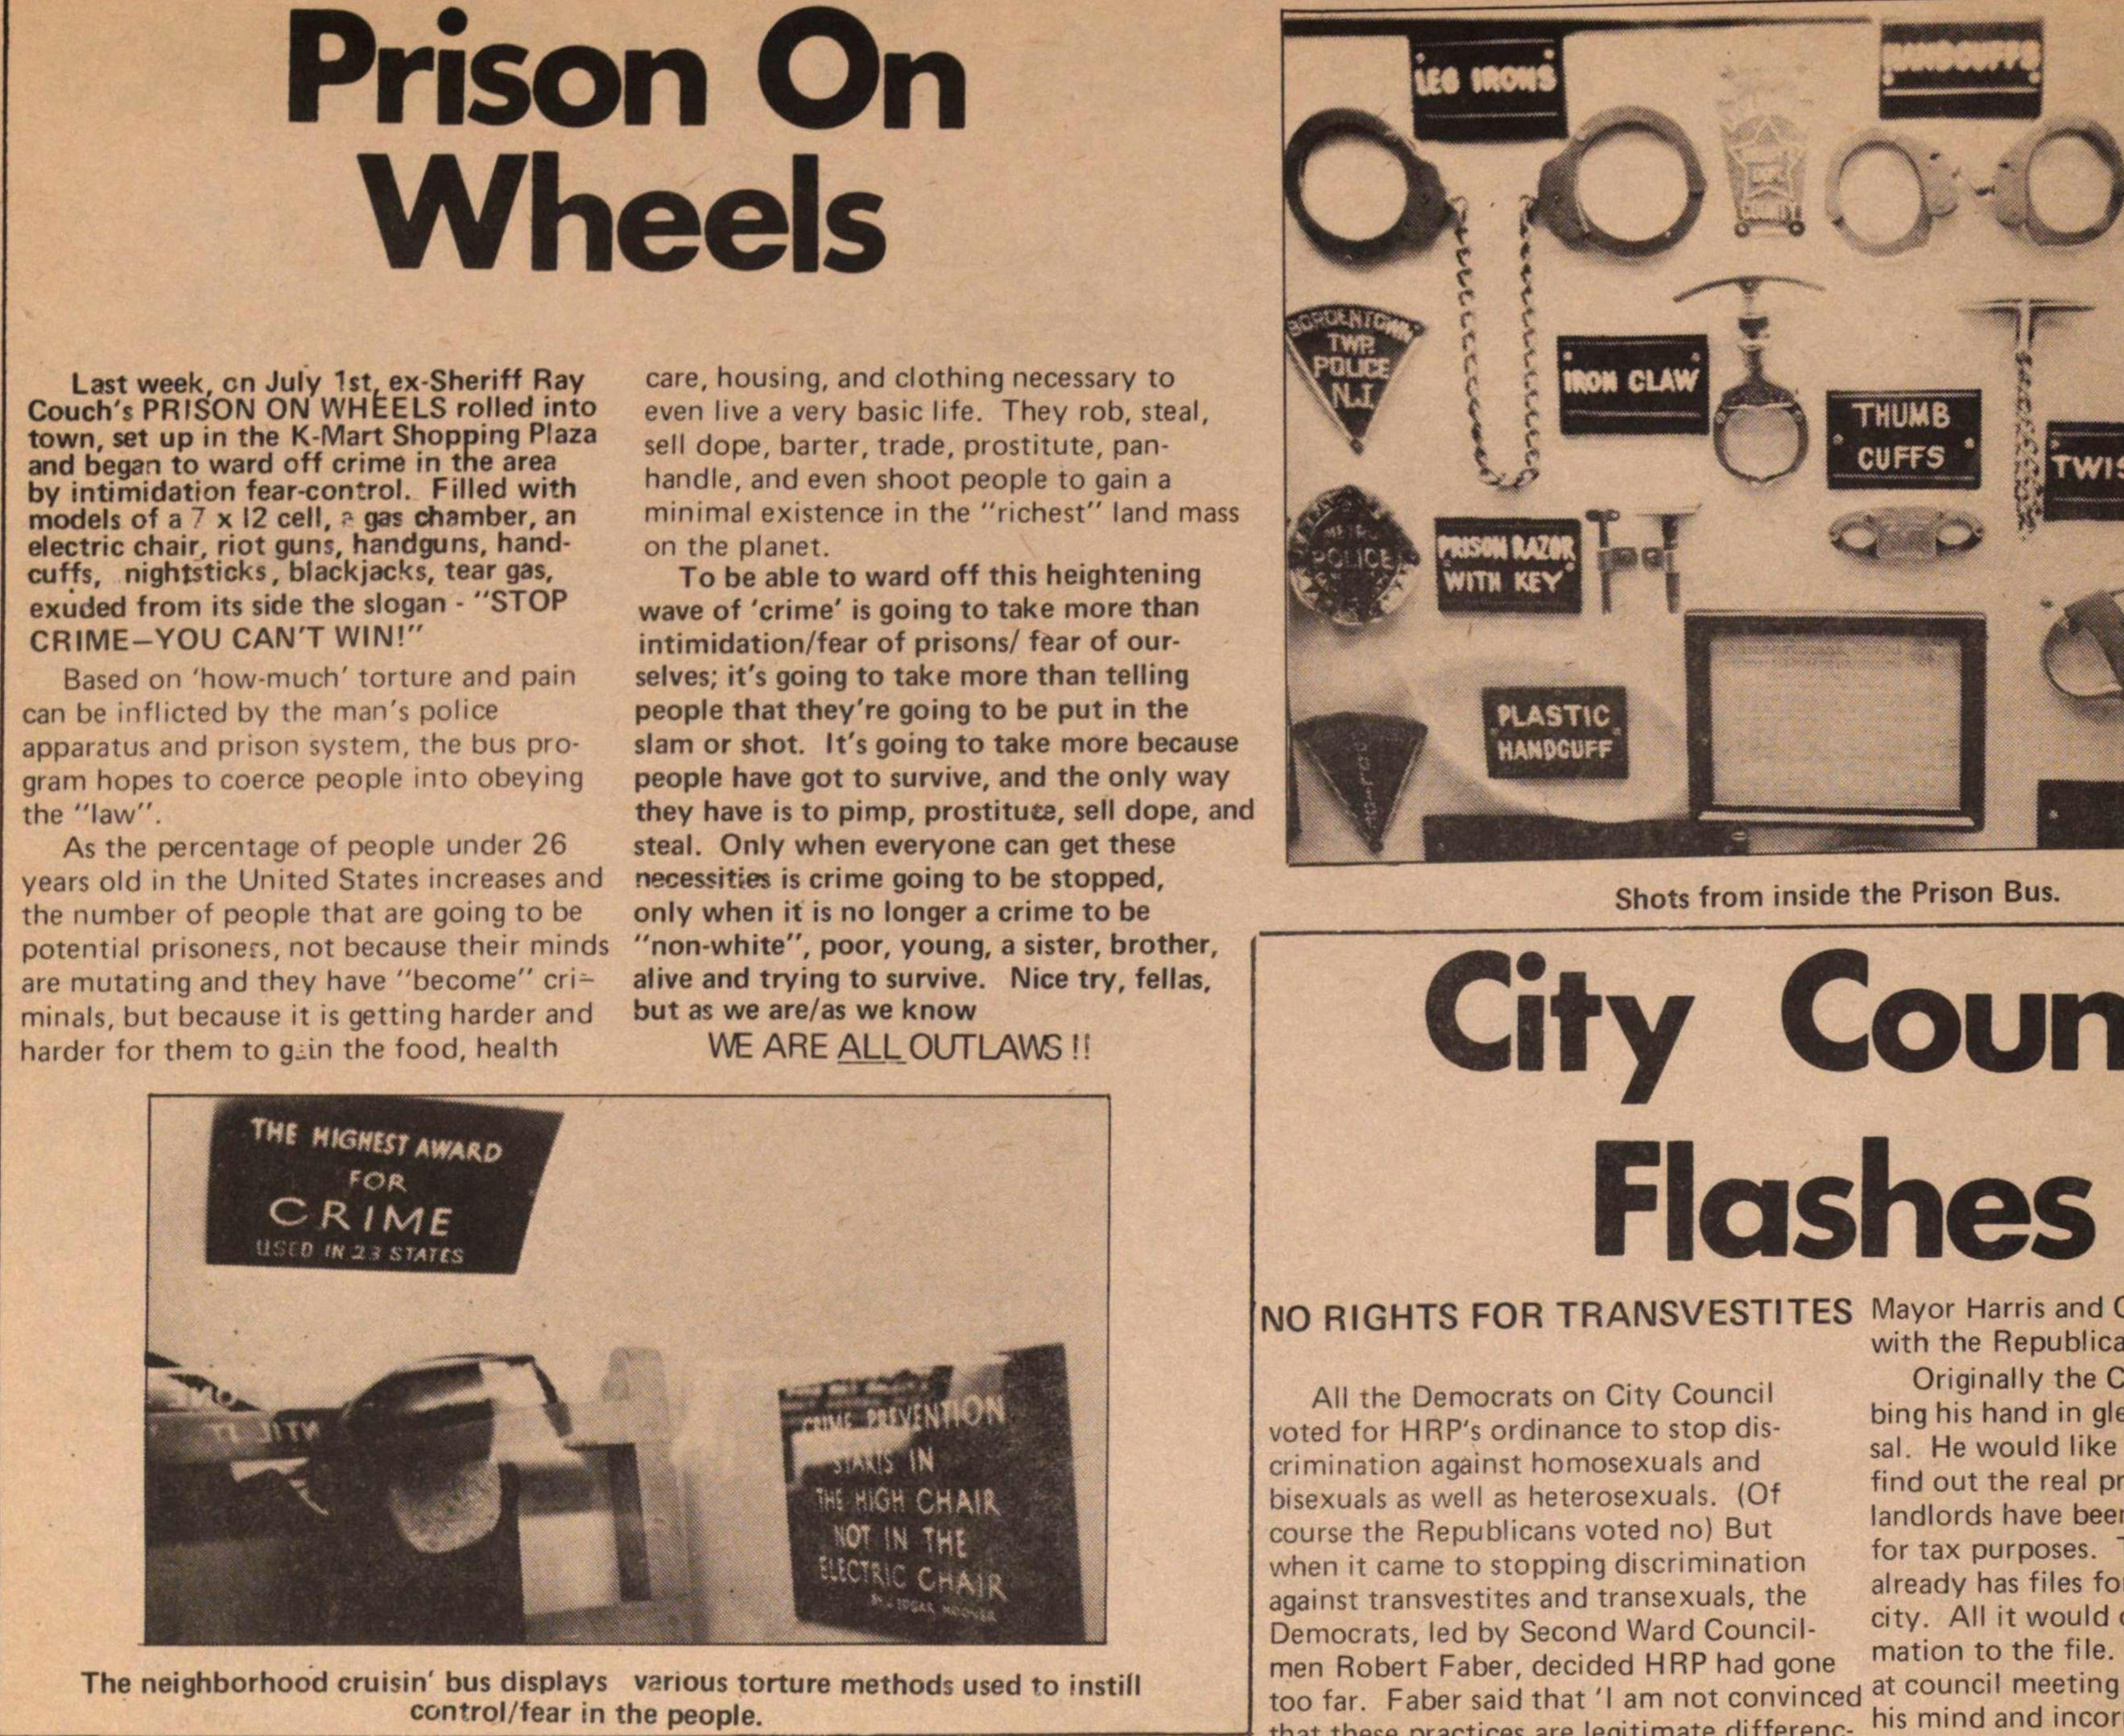 Prison On Wheels image